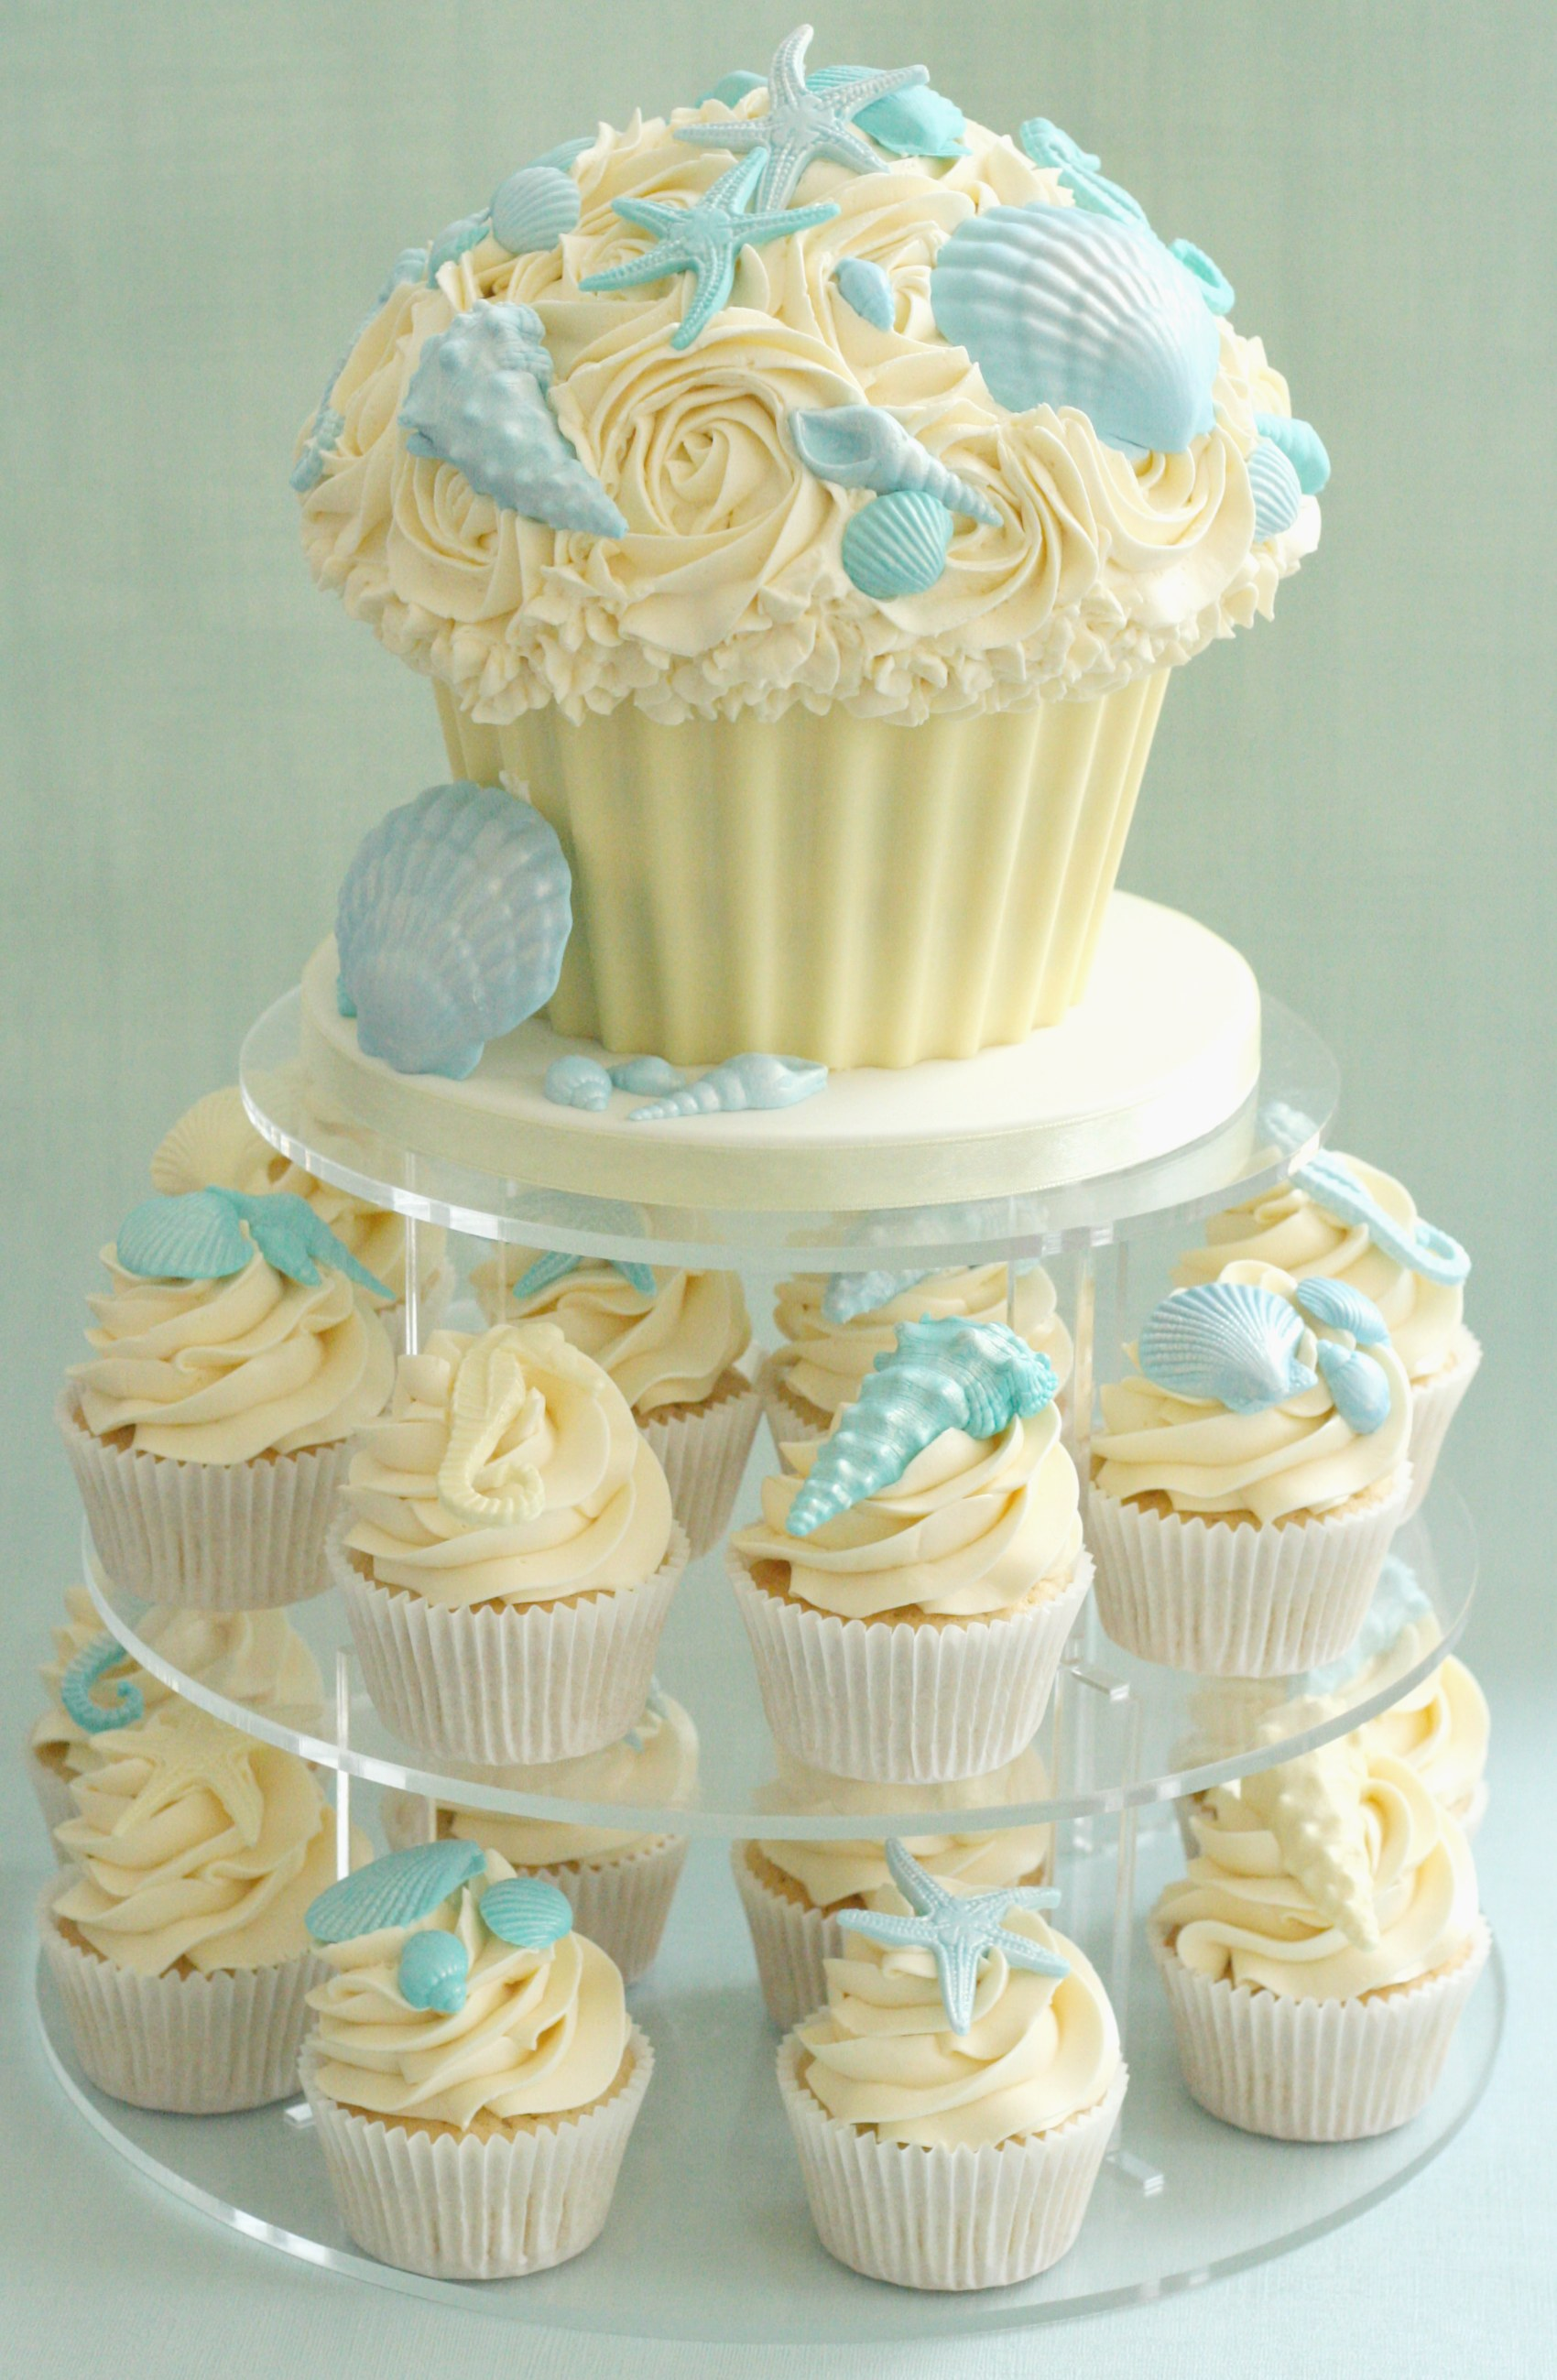 Giant Cupcake & shell cupcakes